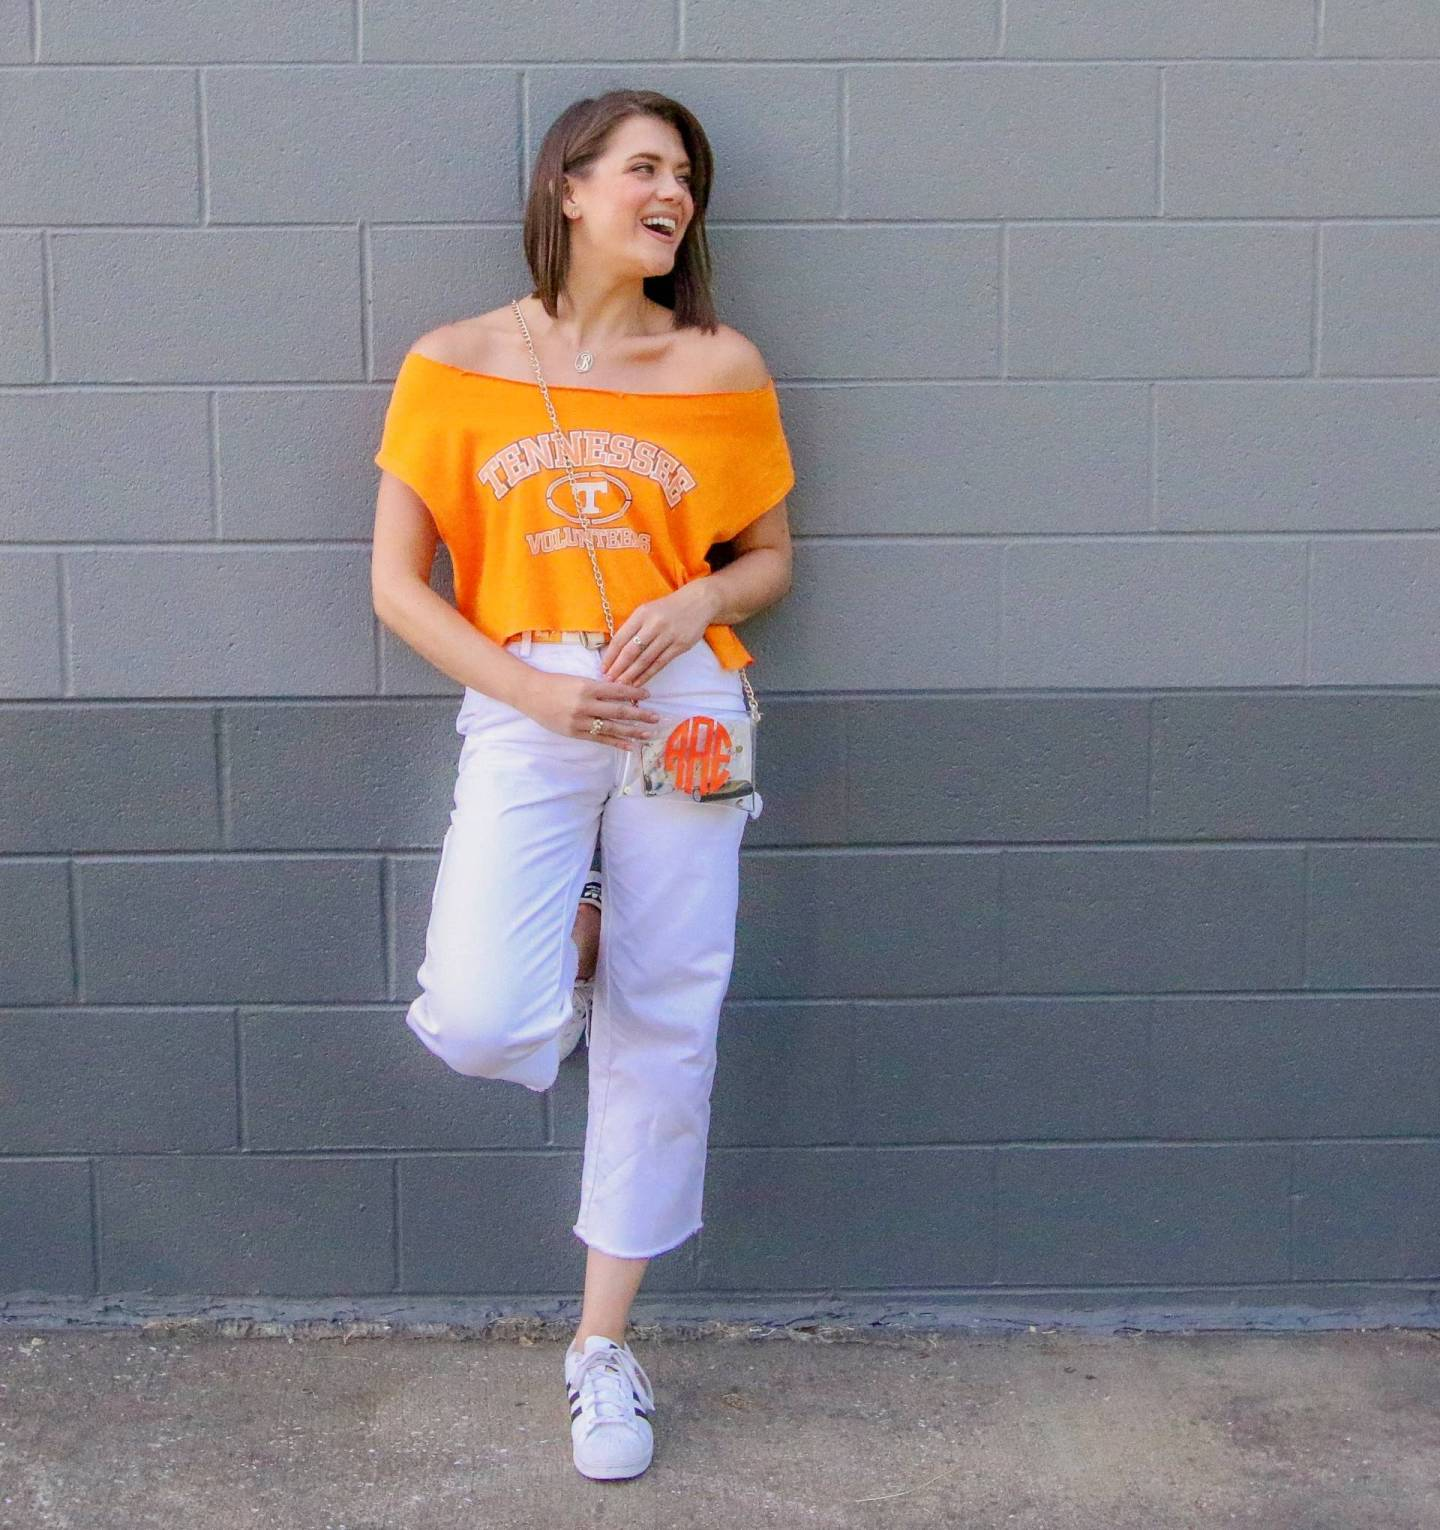 Tailgate Style: 3 Gameday Don'ts